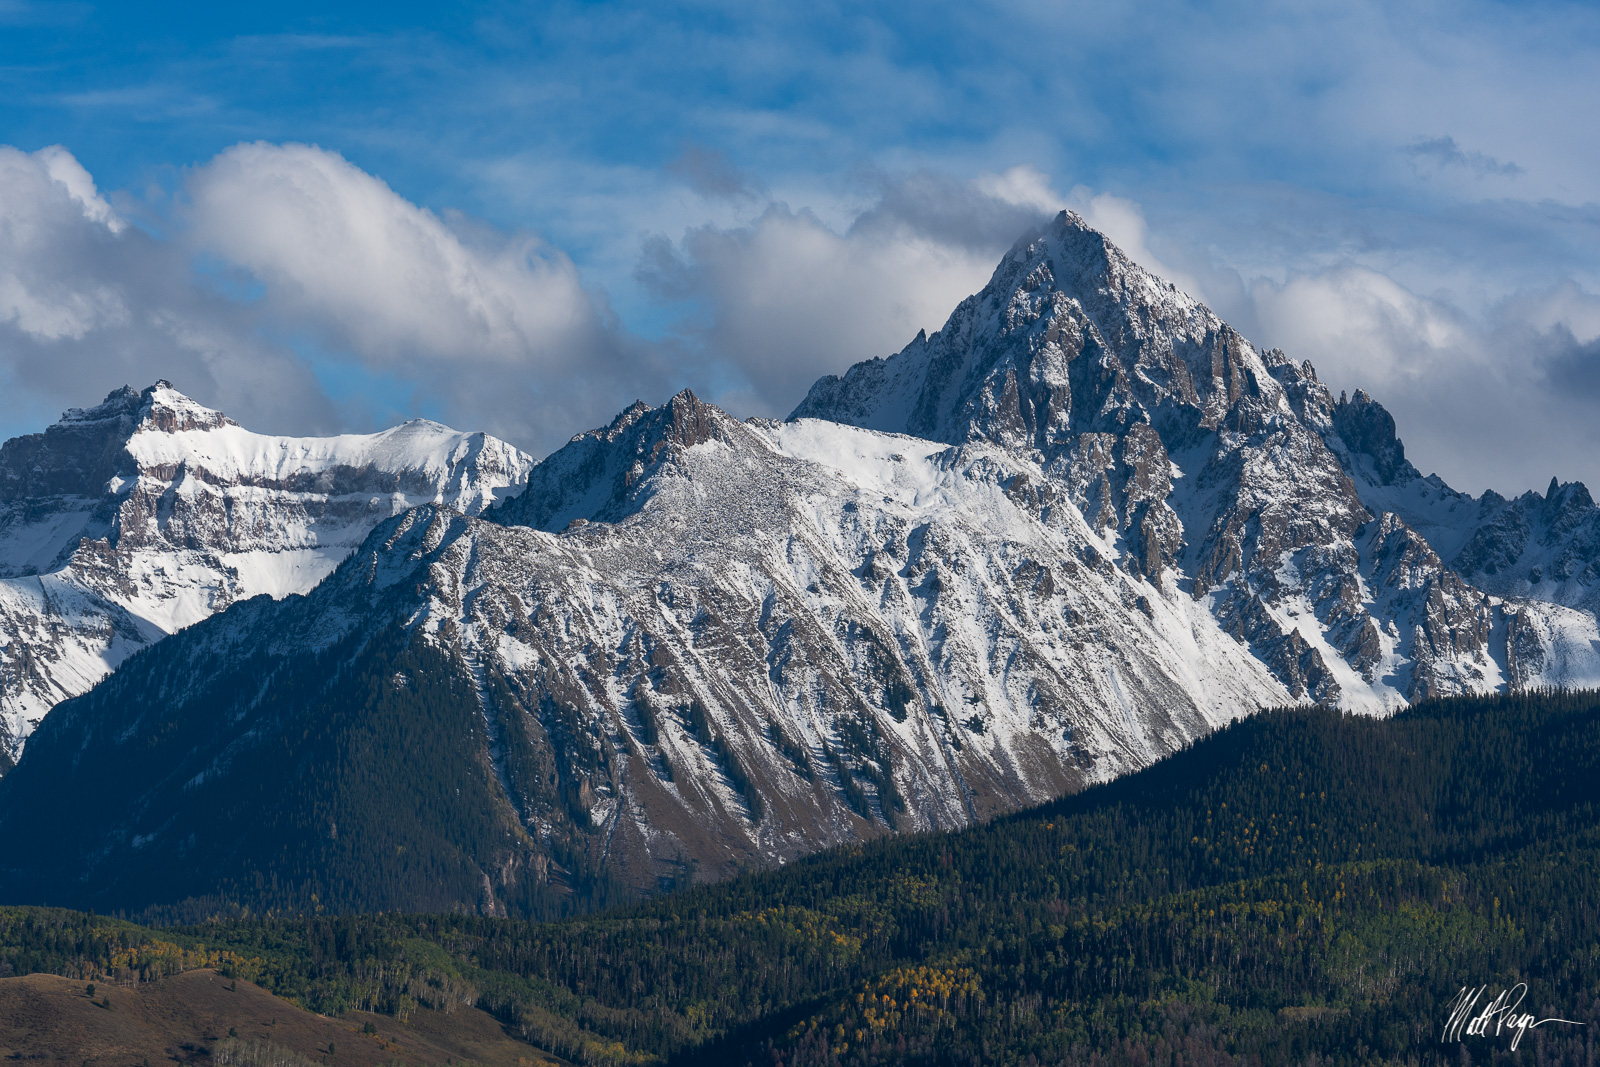 Colorado 14er Mount Sneffels and other mountains bask in afternoon light near Dallas Divide / Ridgway / Telluride after...